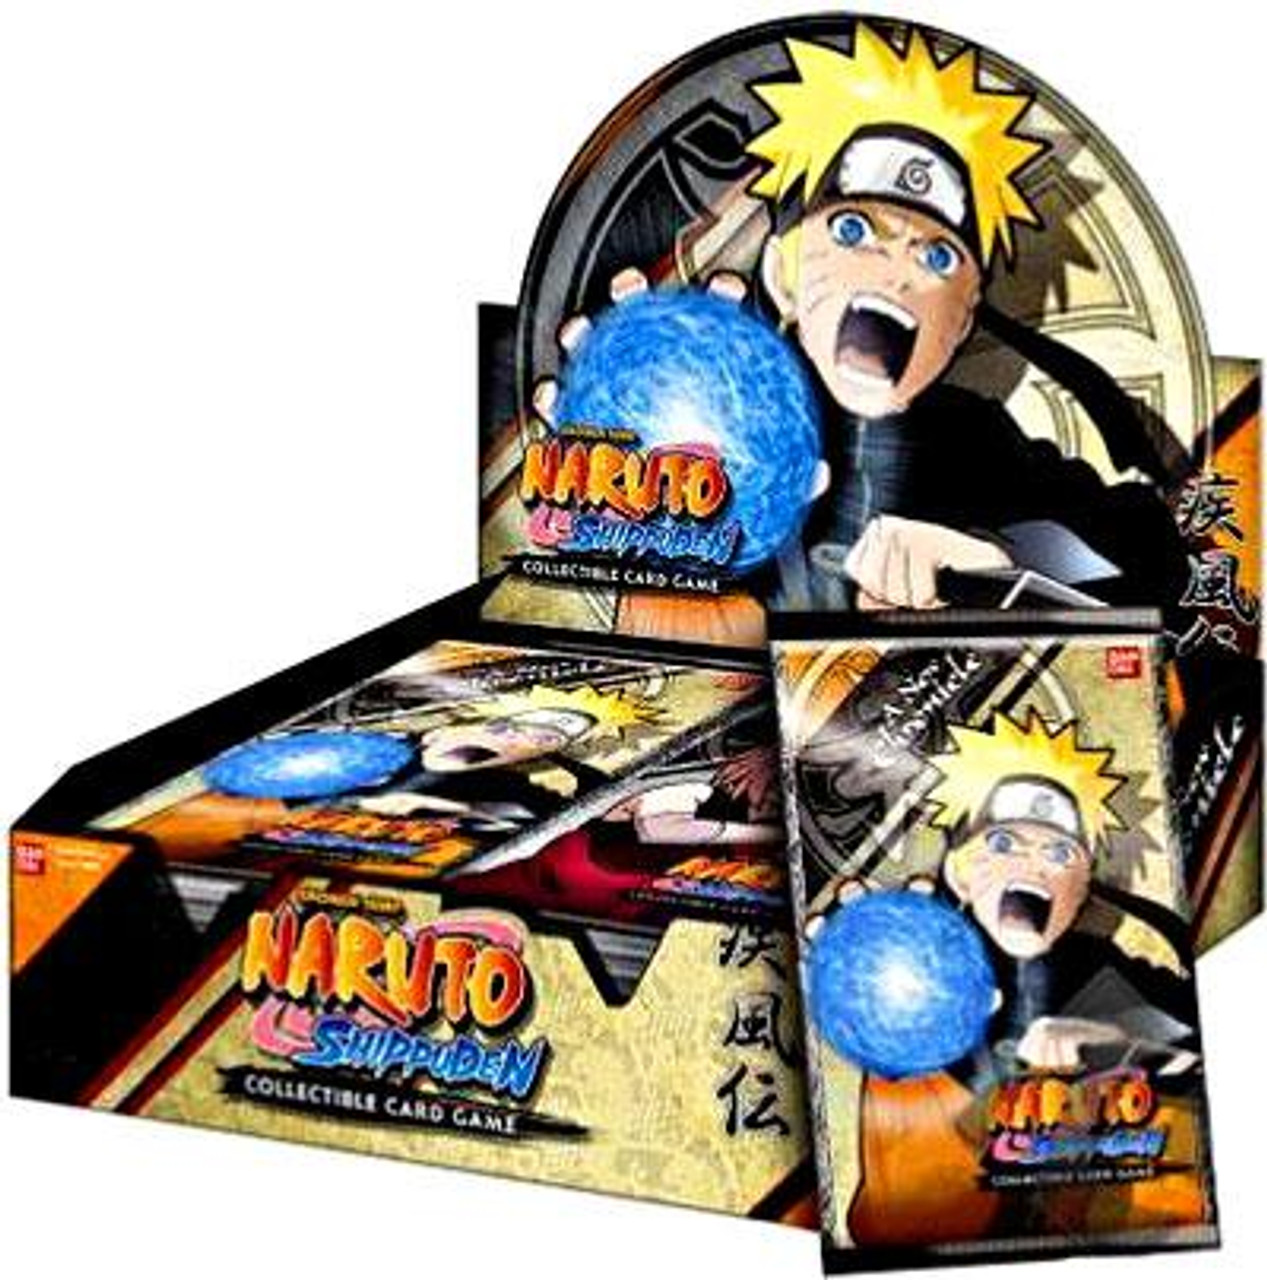 Naruto Card Game New Chronicle Booster Box [24 Packs]